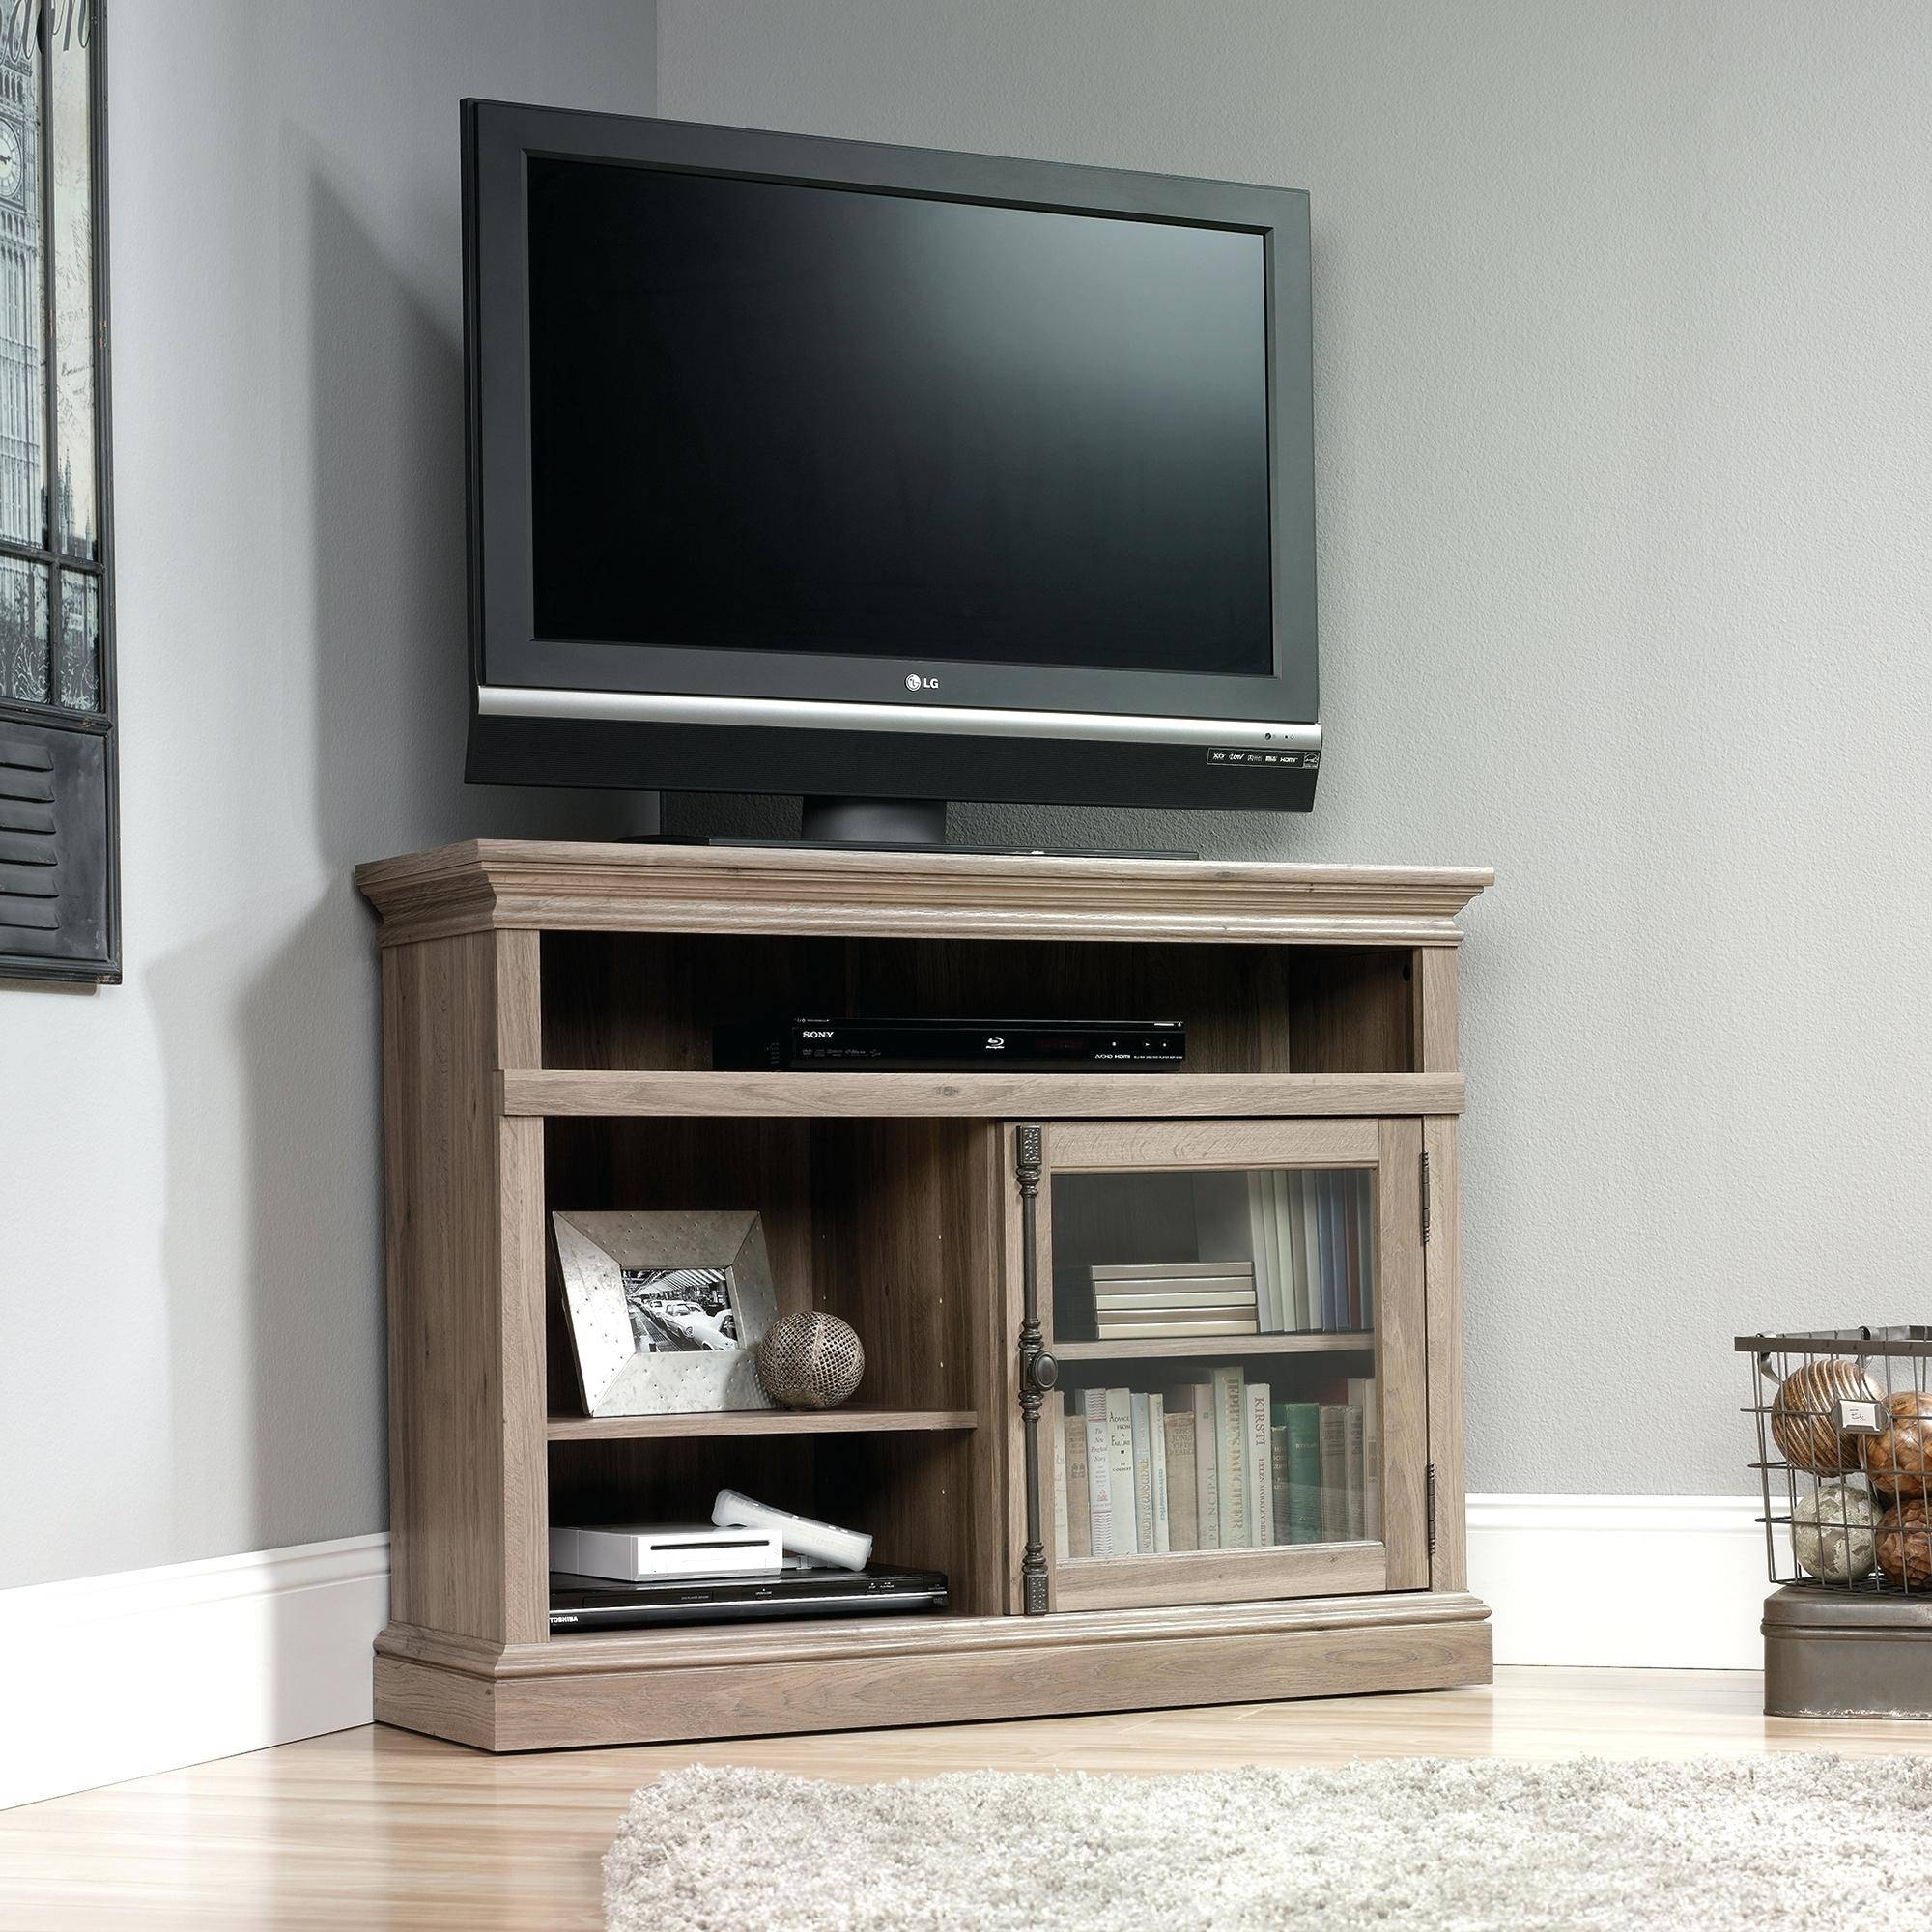 Tv Stand : 38 Corner Tv Stand Corner Tv Stand Splendid Corner Tv For Tv Stands 38 Inches Wide (View 7 of 15)